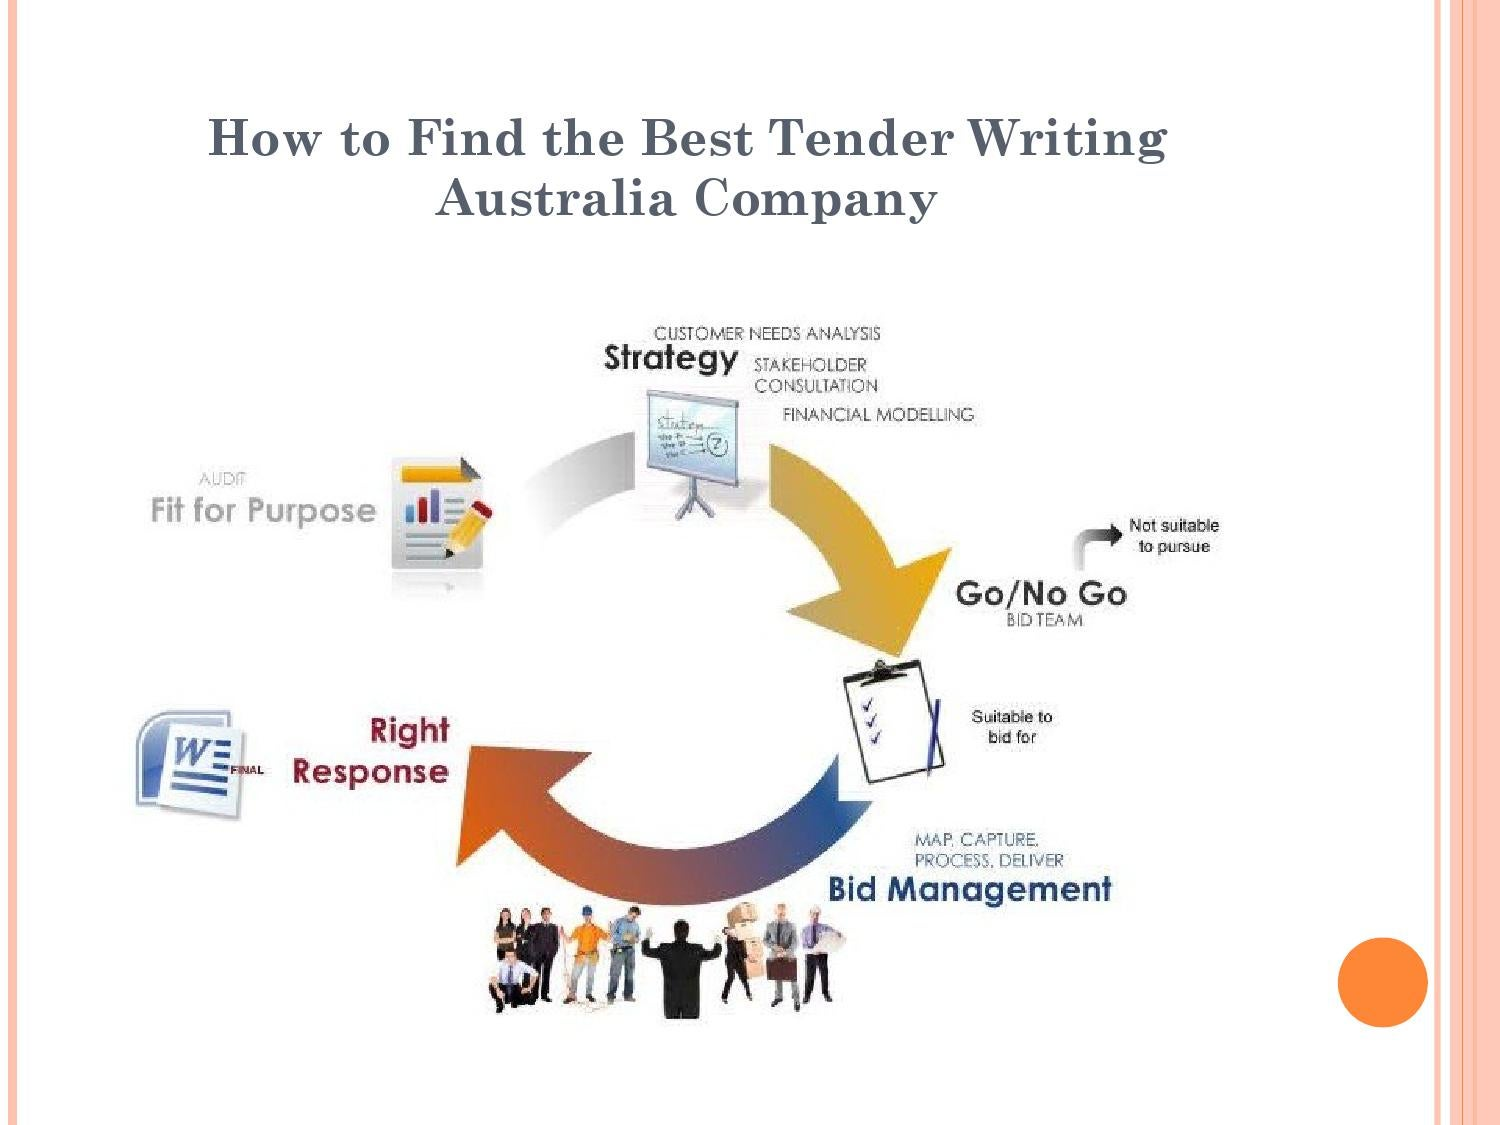 technical writing australia Abelard consulting is a specialist provider of technical writing services, technical writer placement services, and training in technical writing, scientific writing.